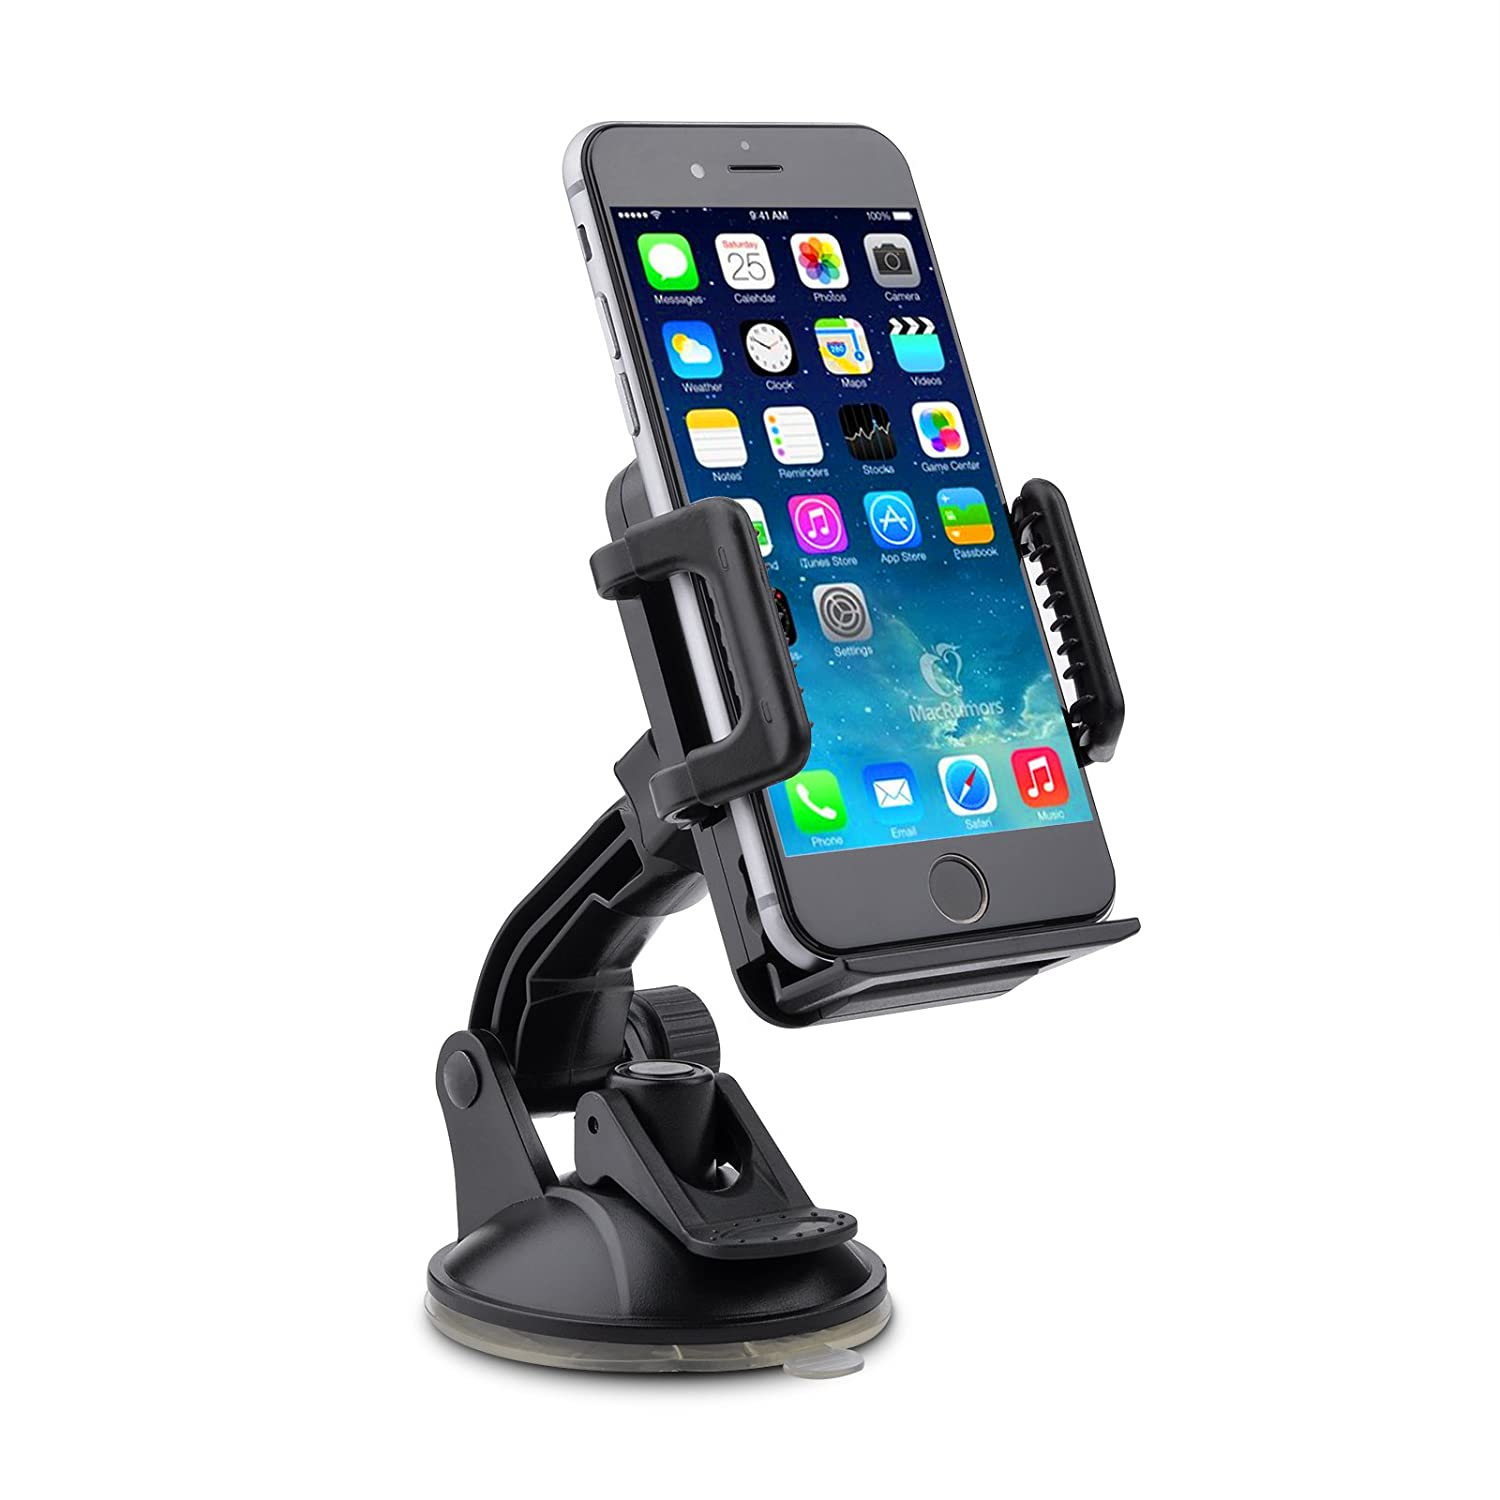 TaoTronics Car Windshield / Dashboard Universal smart phone mount Holder, car cradle for iPhone / Android